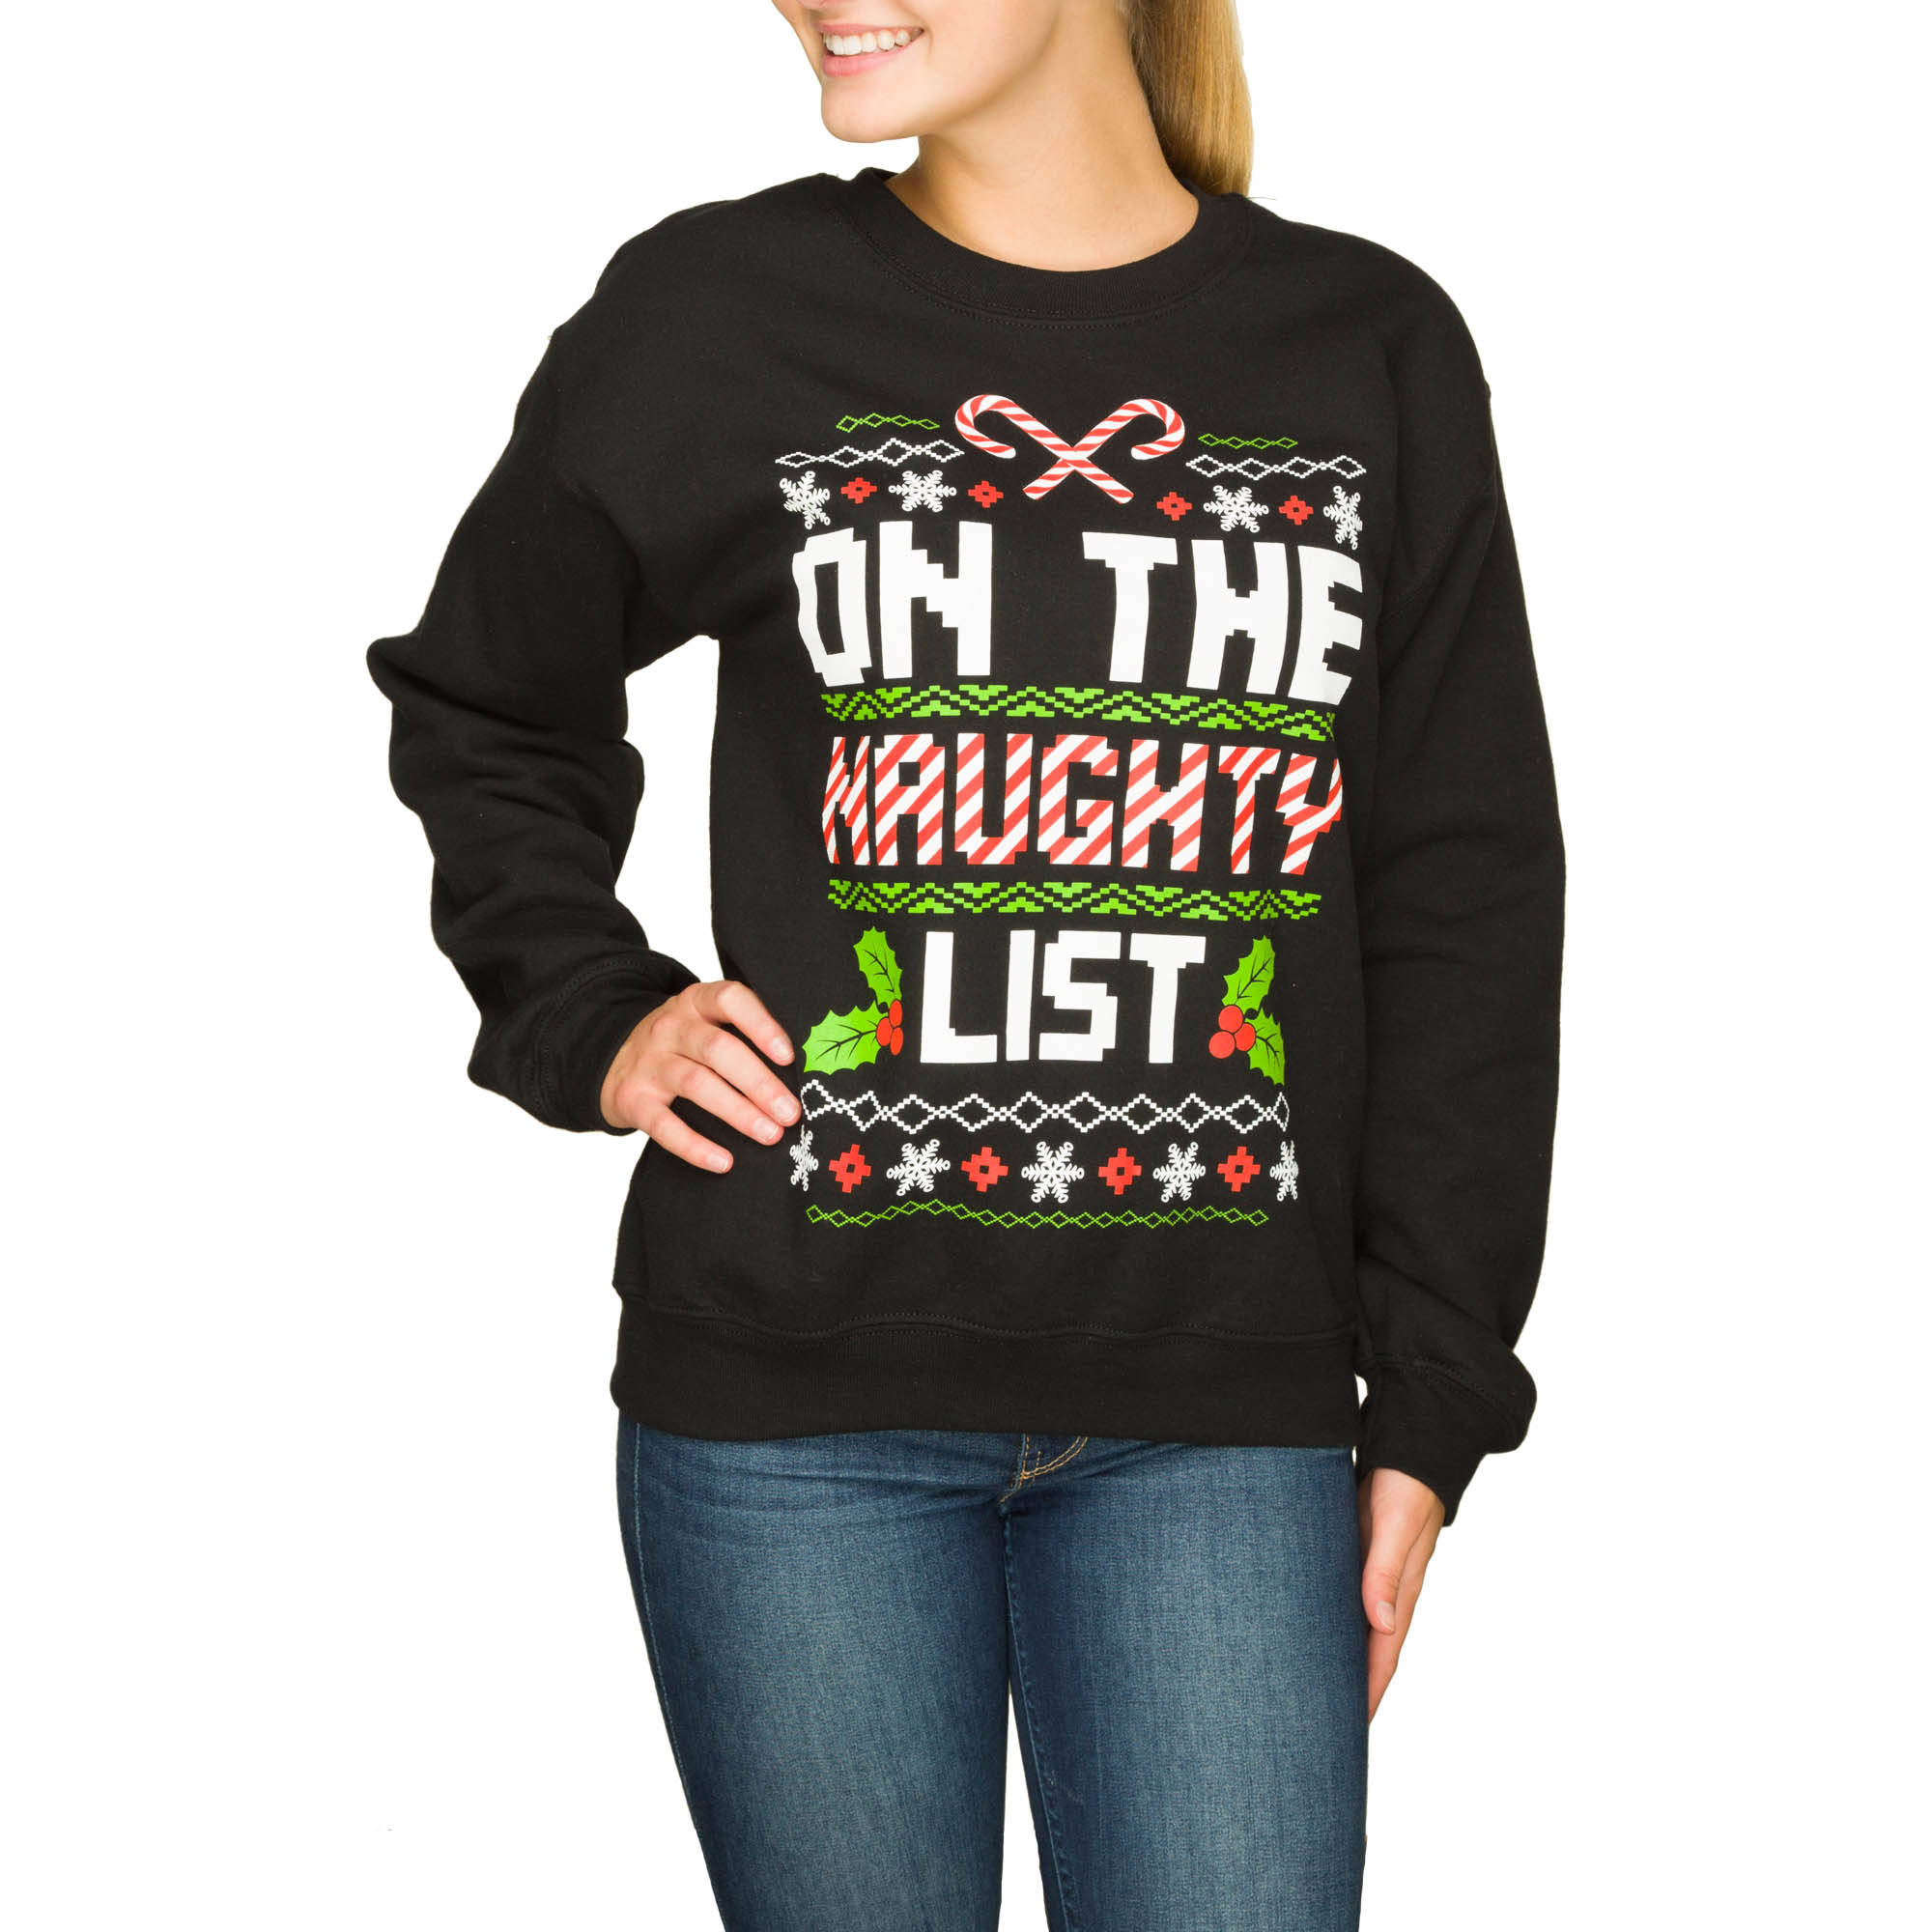 Juniors' Holiday Christmas Crewneck Pullover Sweaters